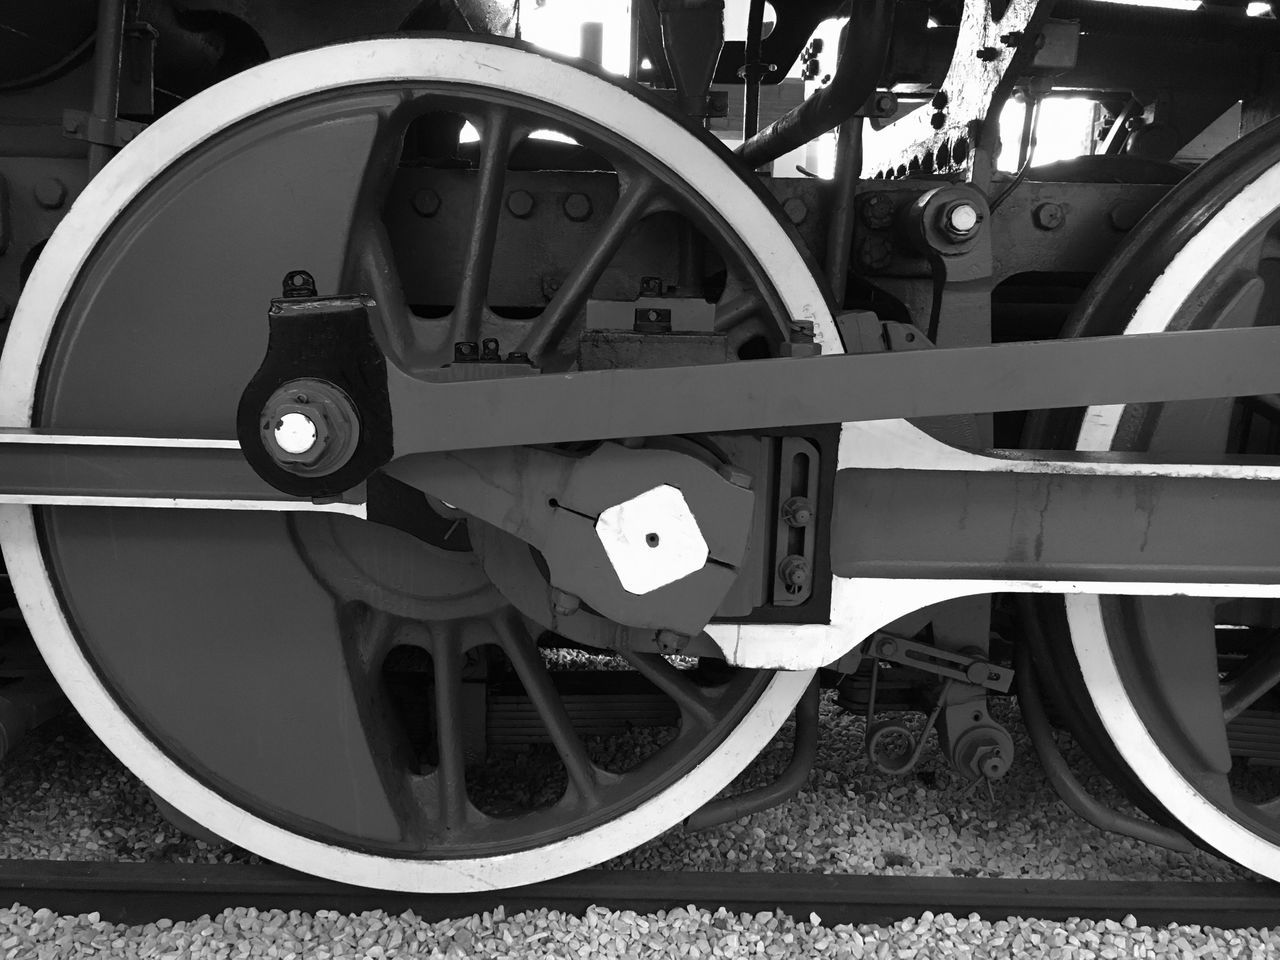 transportation, mode of transportation, wheel, land vehicle, no people, close-up, metal, rail transportation, track, day, railroad track, outdoors, machinery, public transportation, train, circle, shape, architecture, travel, focus on foreground